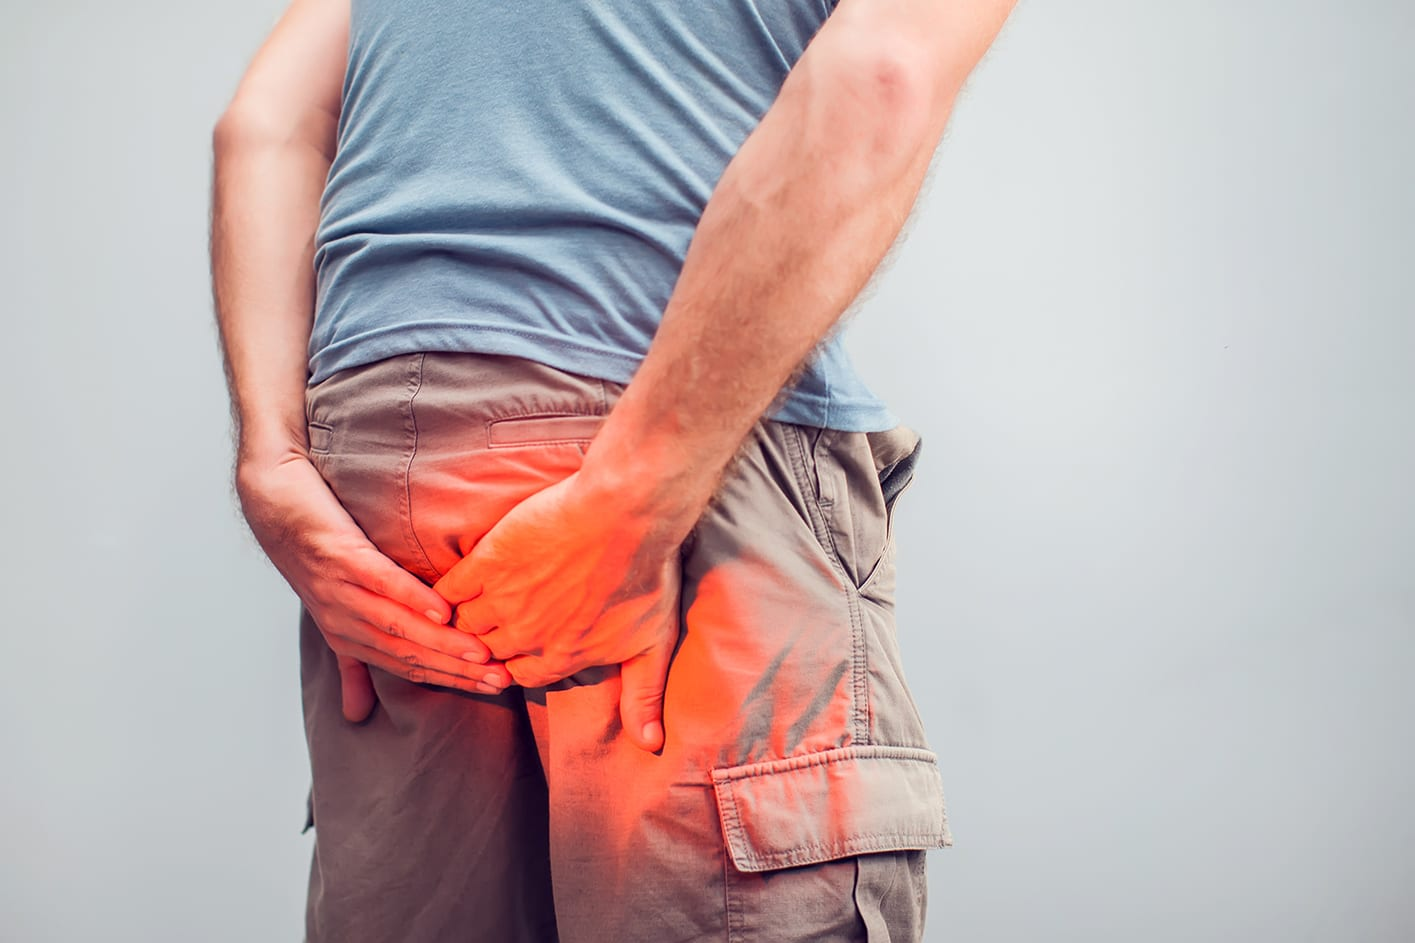 Man with hemorrhoids holding his butt in pain, in a white background